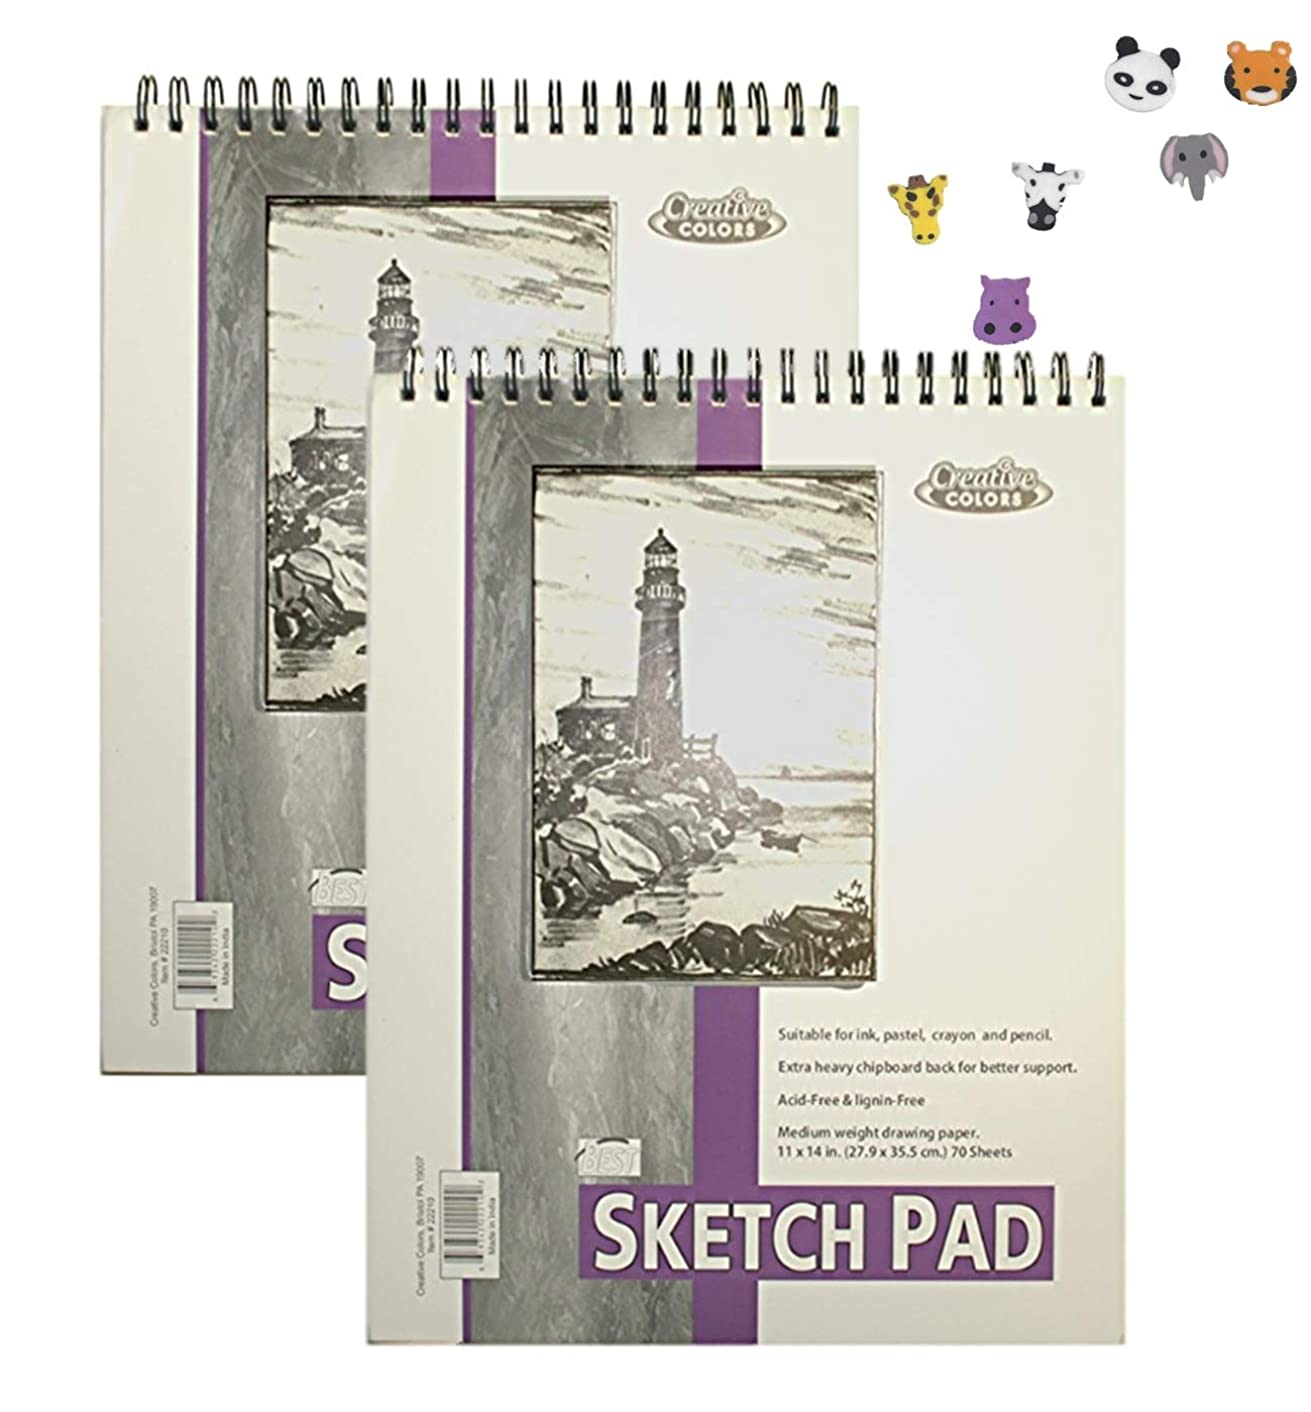 "Creative Colors 11x14"" Sketch Pad, Pack of 2, 140 Sheets (120 Lb) 70 Sheets Each, Spiral-Bound Recommendable for Ink, Pastel, Crayon and Pencil Bonus 3 erasers"